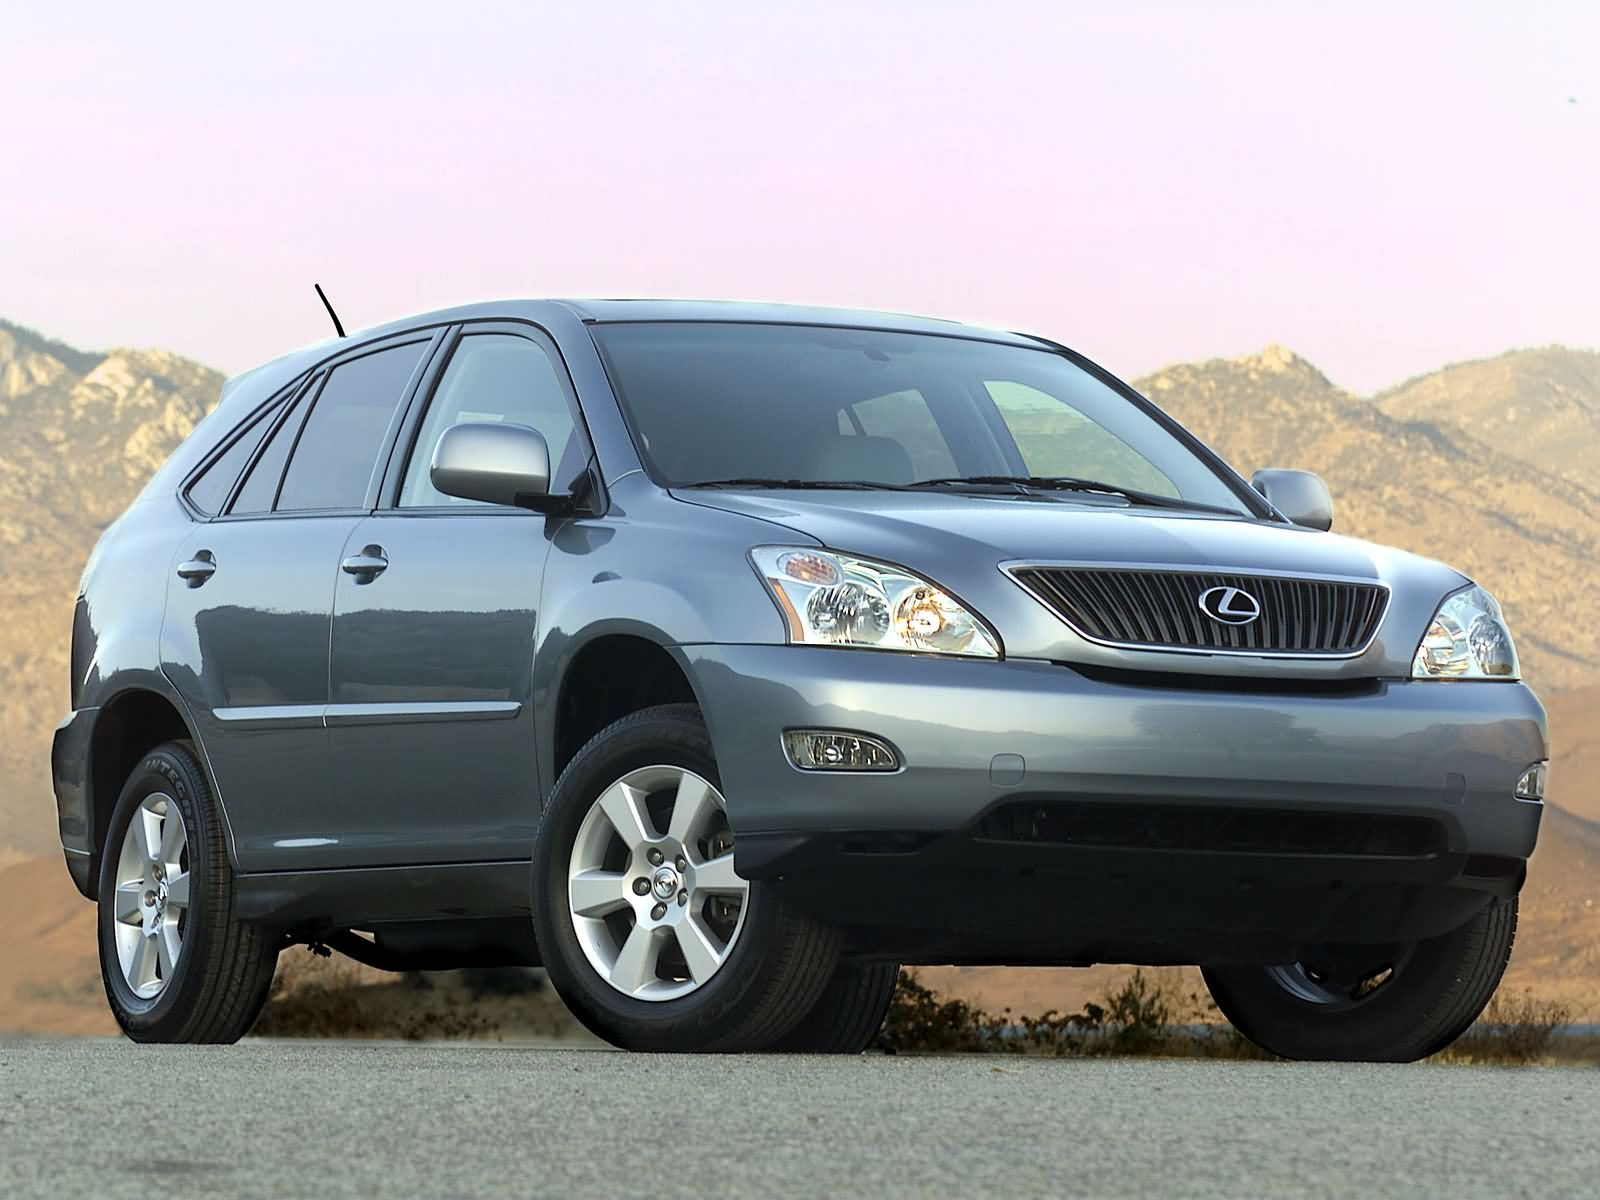 Lexus RX 330 photo 3004